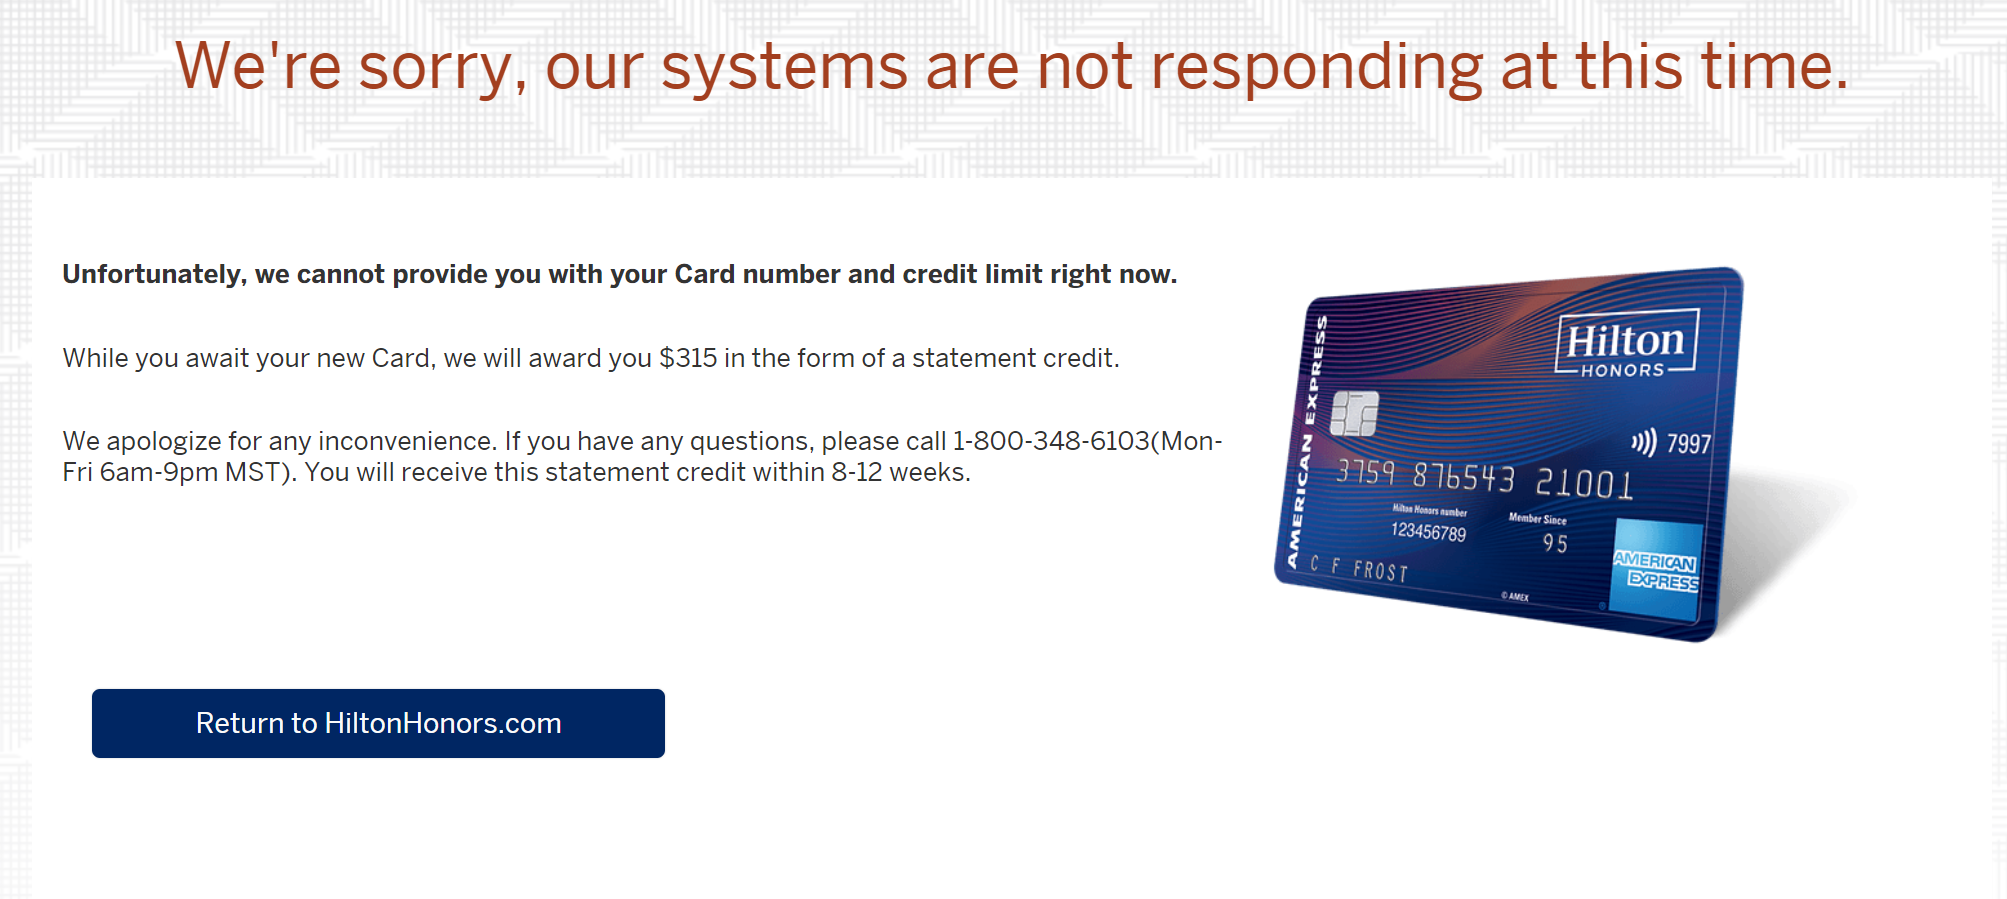 Getting a statement credit instead of an instant card number from American Express. Image credit: Imgur via reddit